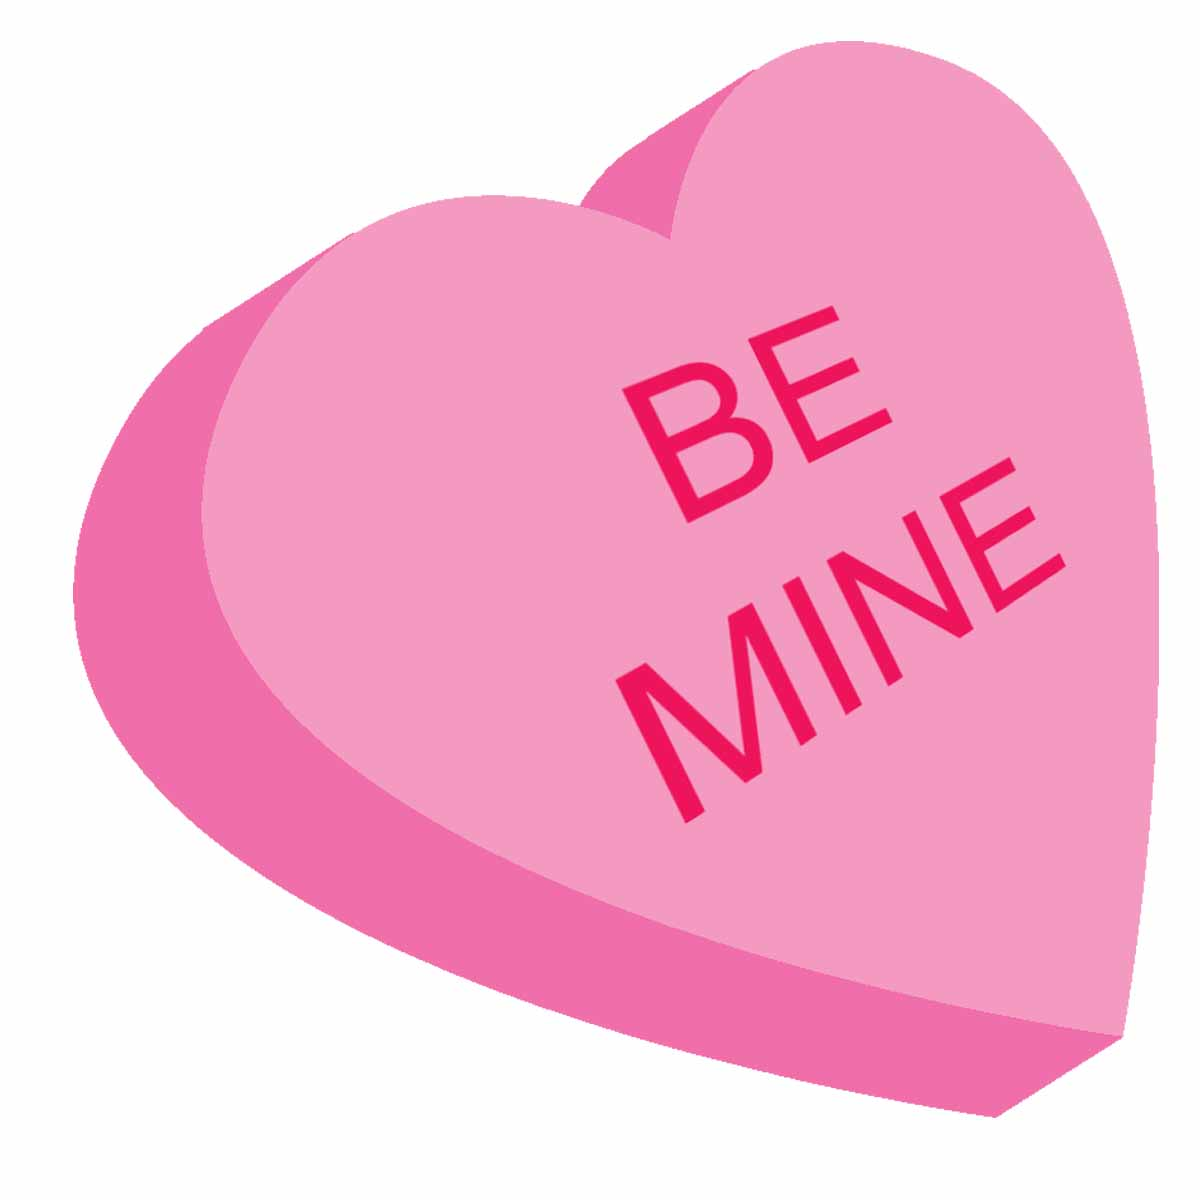 Free Heart Candy Cliparts, Download Free Clip Art, Free Clip.